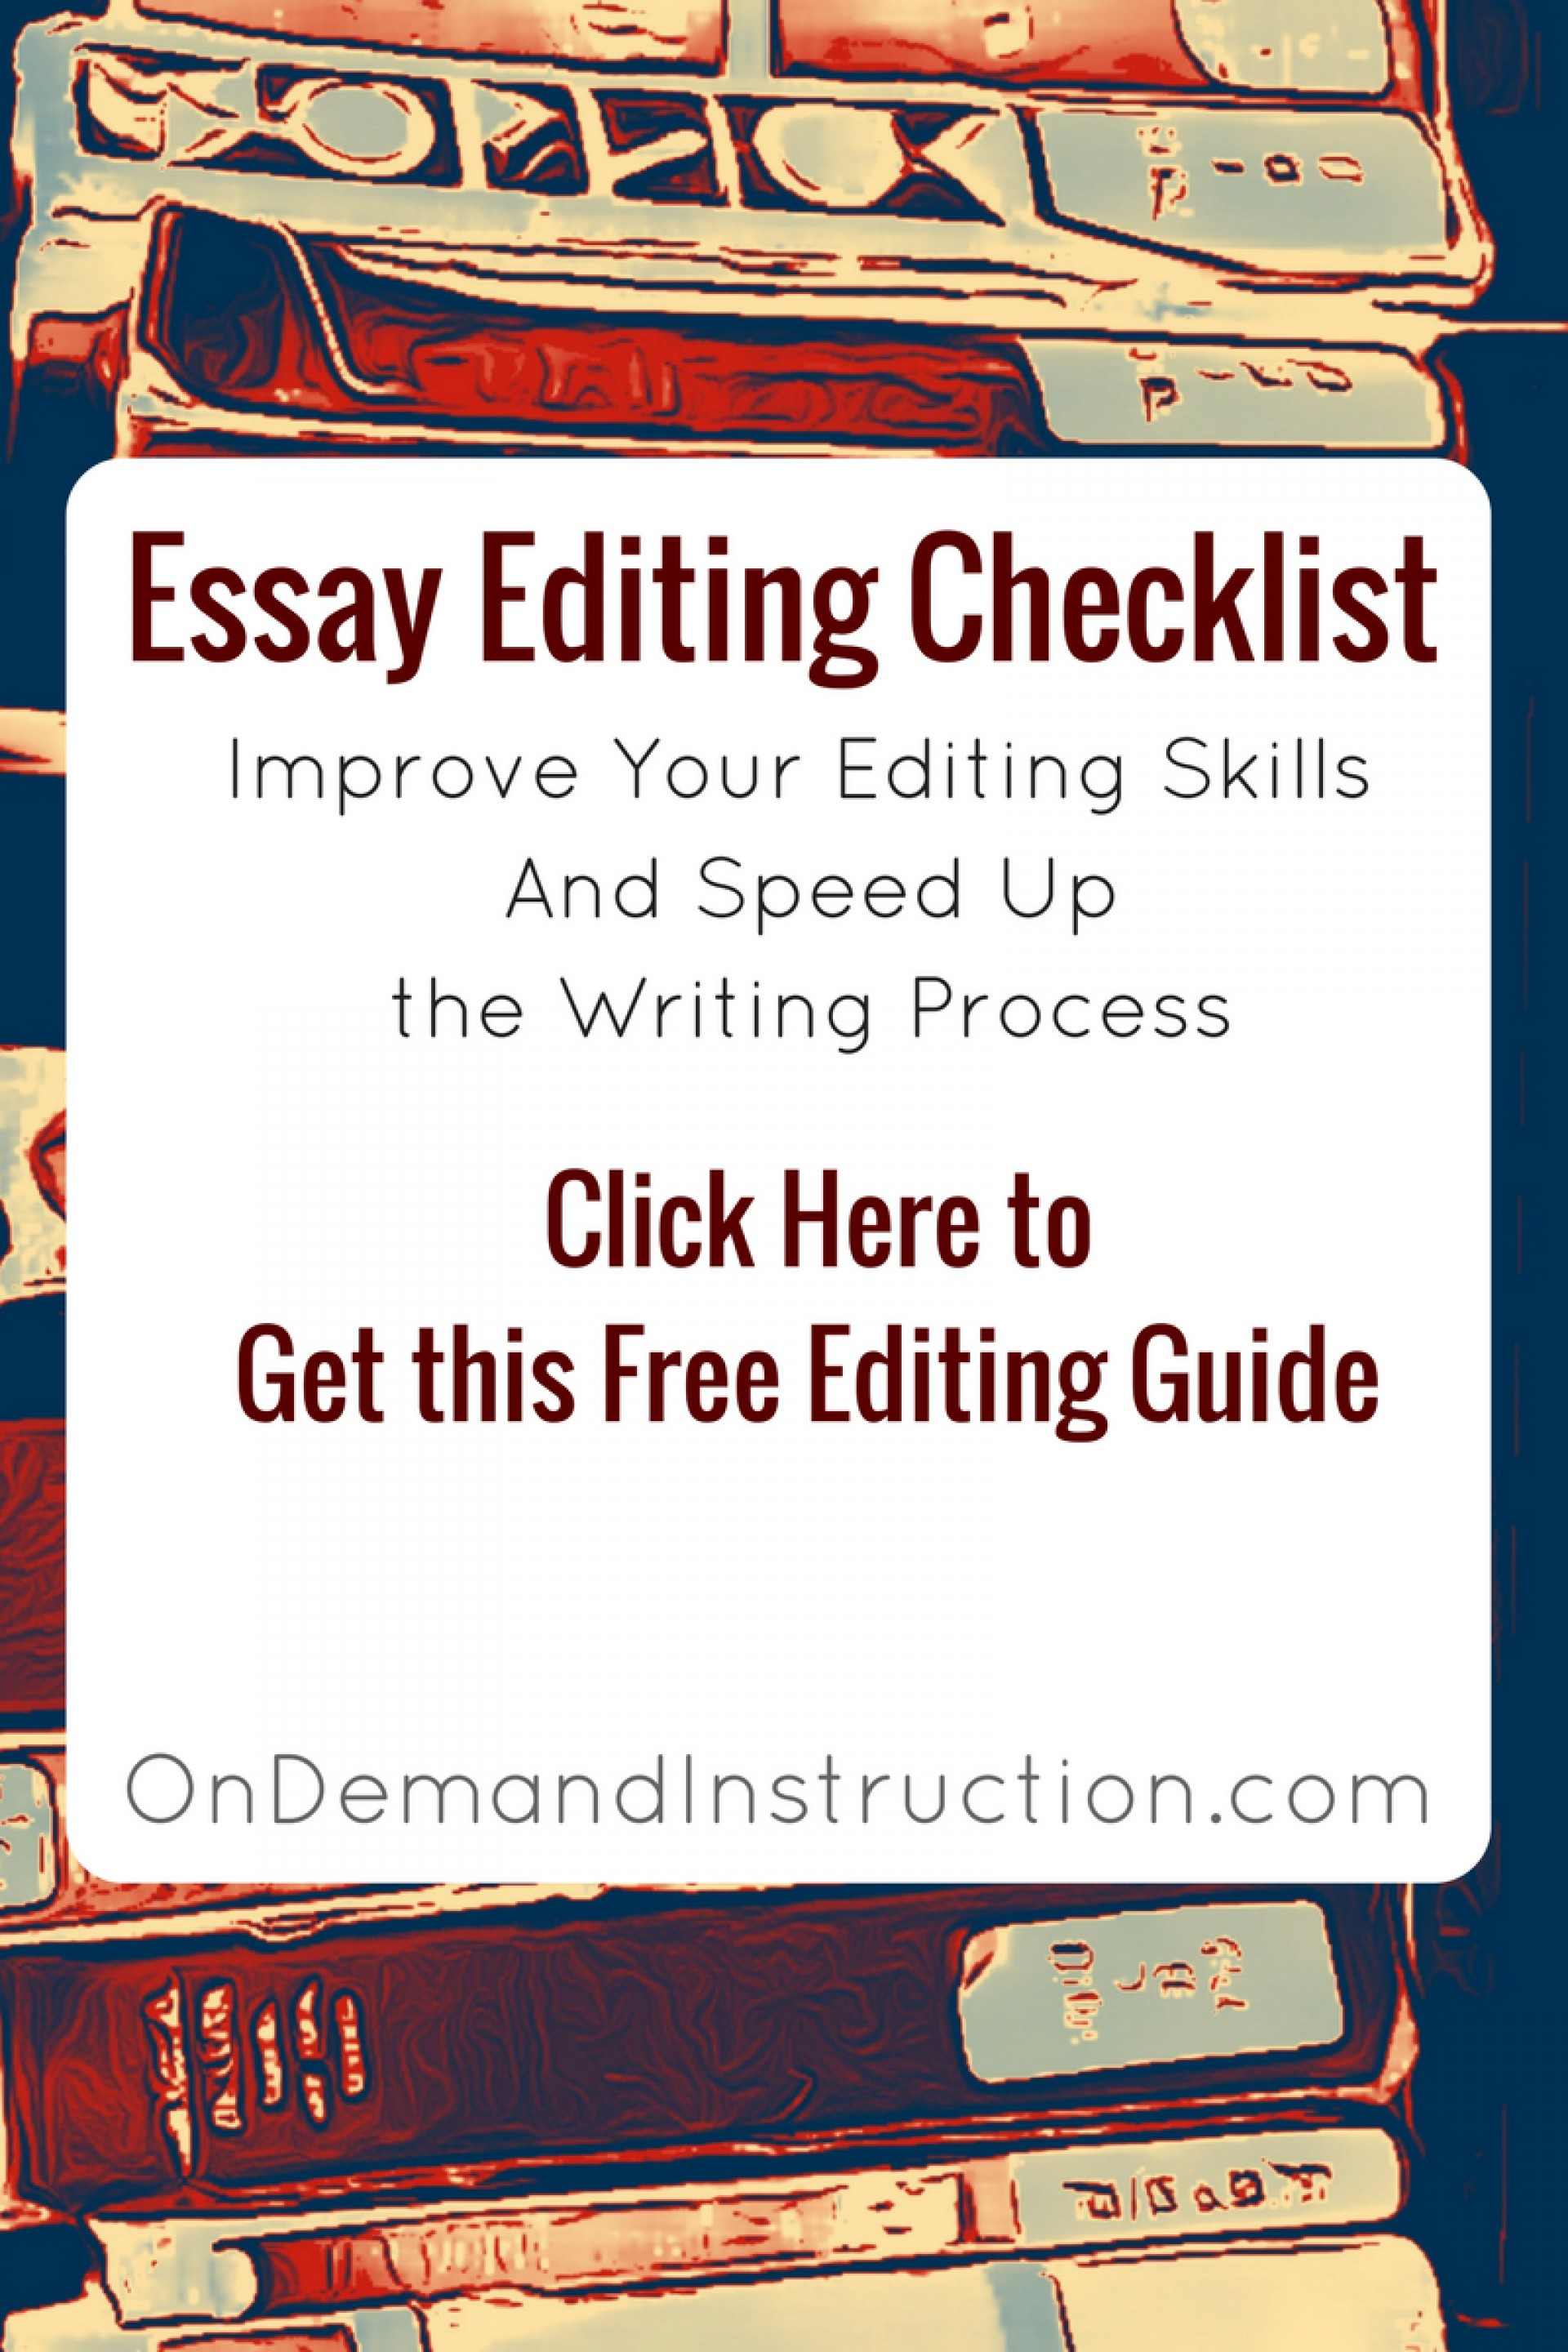 008 Free Essay Editor Rare Online College Proofreader Paper App 1920